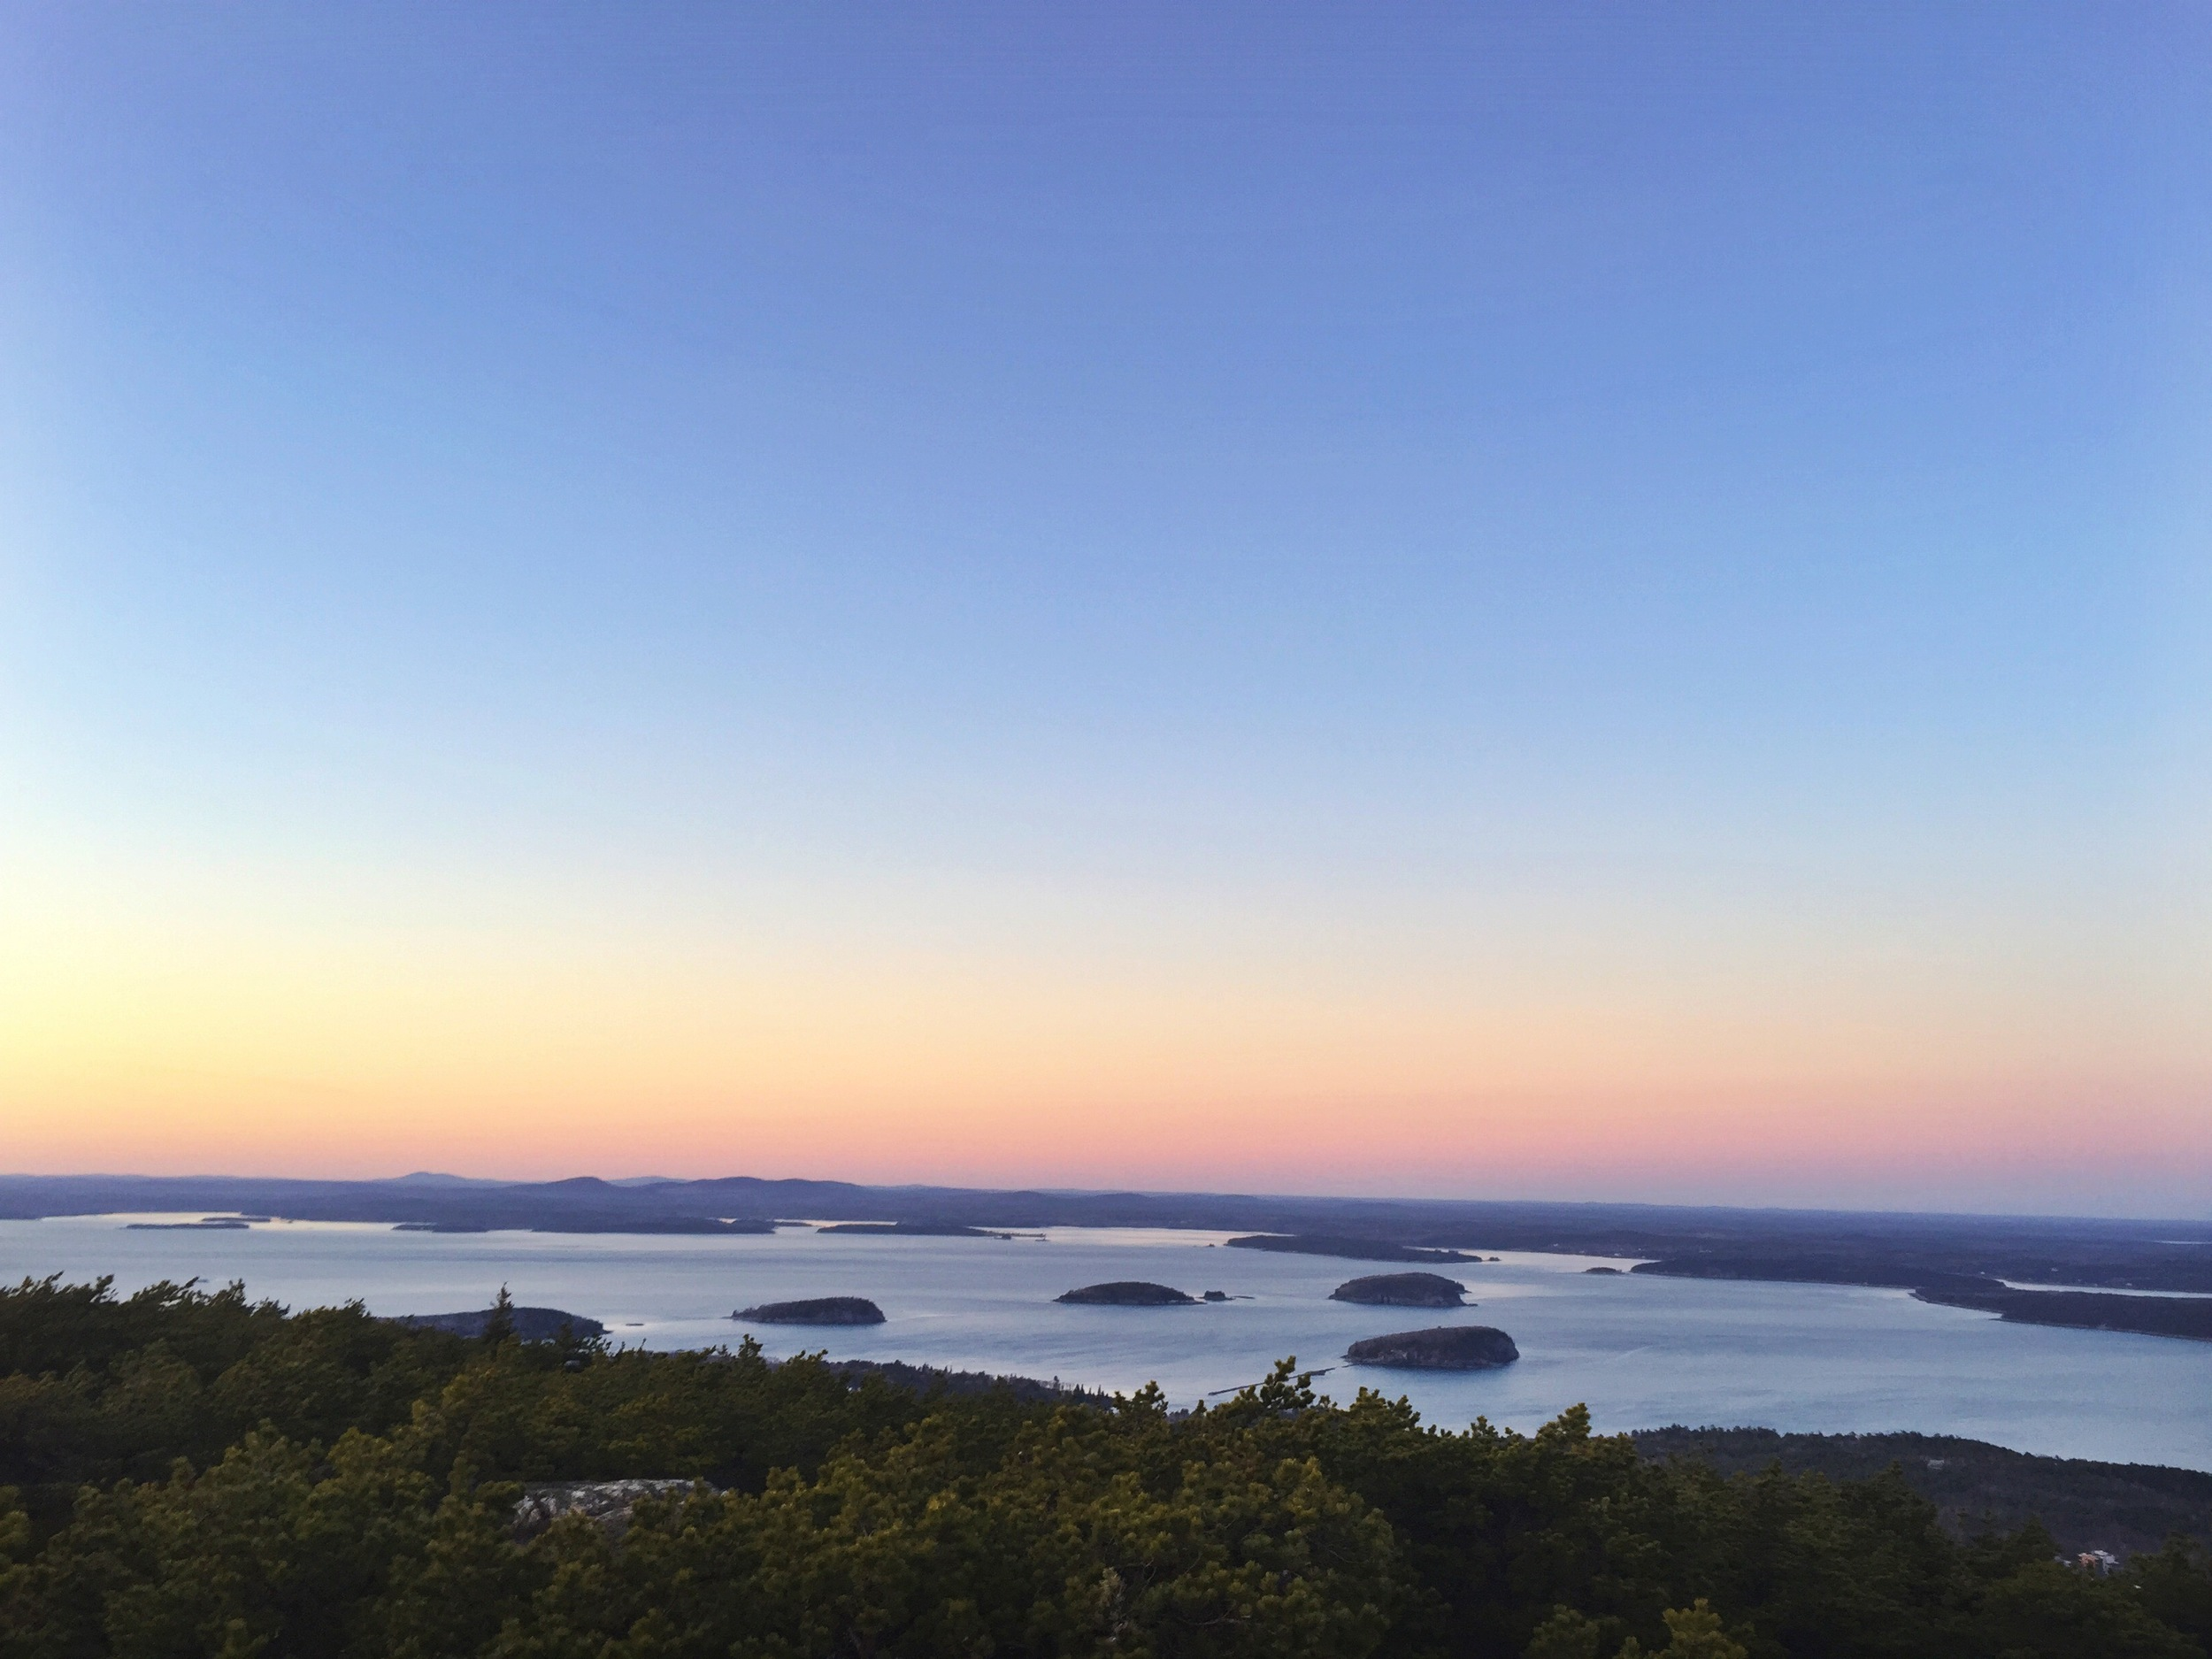 A view of Frenchmans Bay and the Porcupine Islands from Dorr Mountain